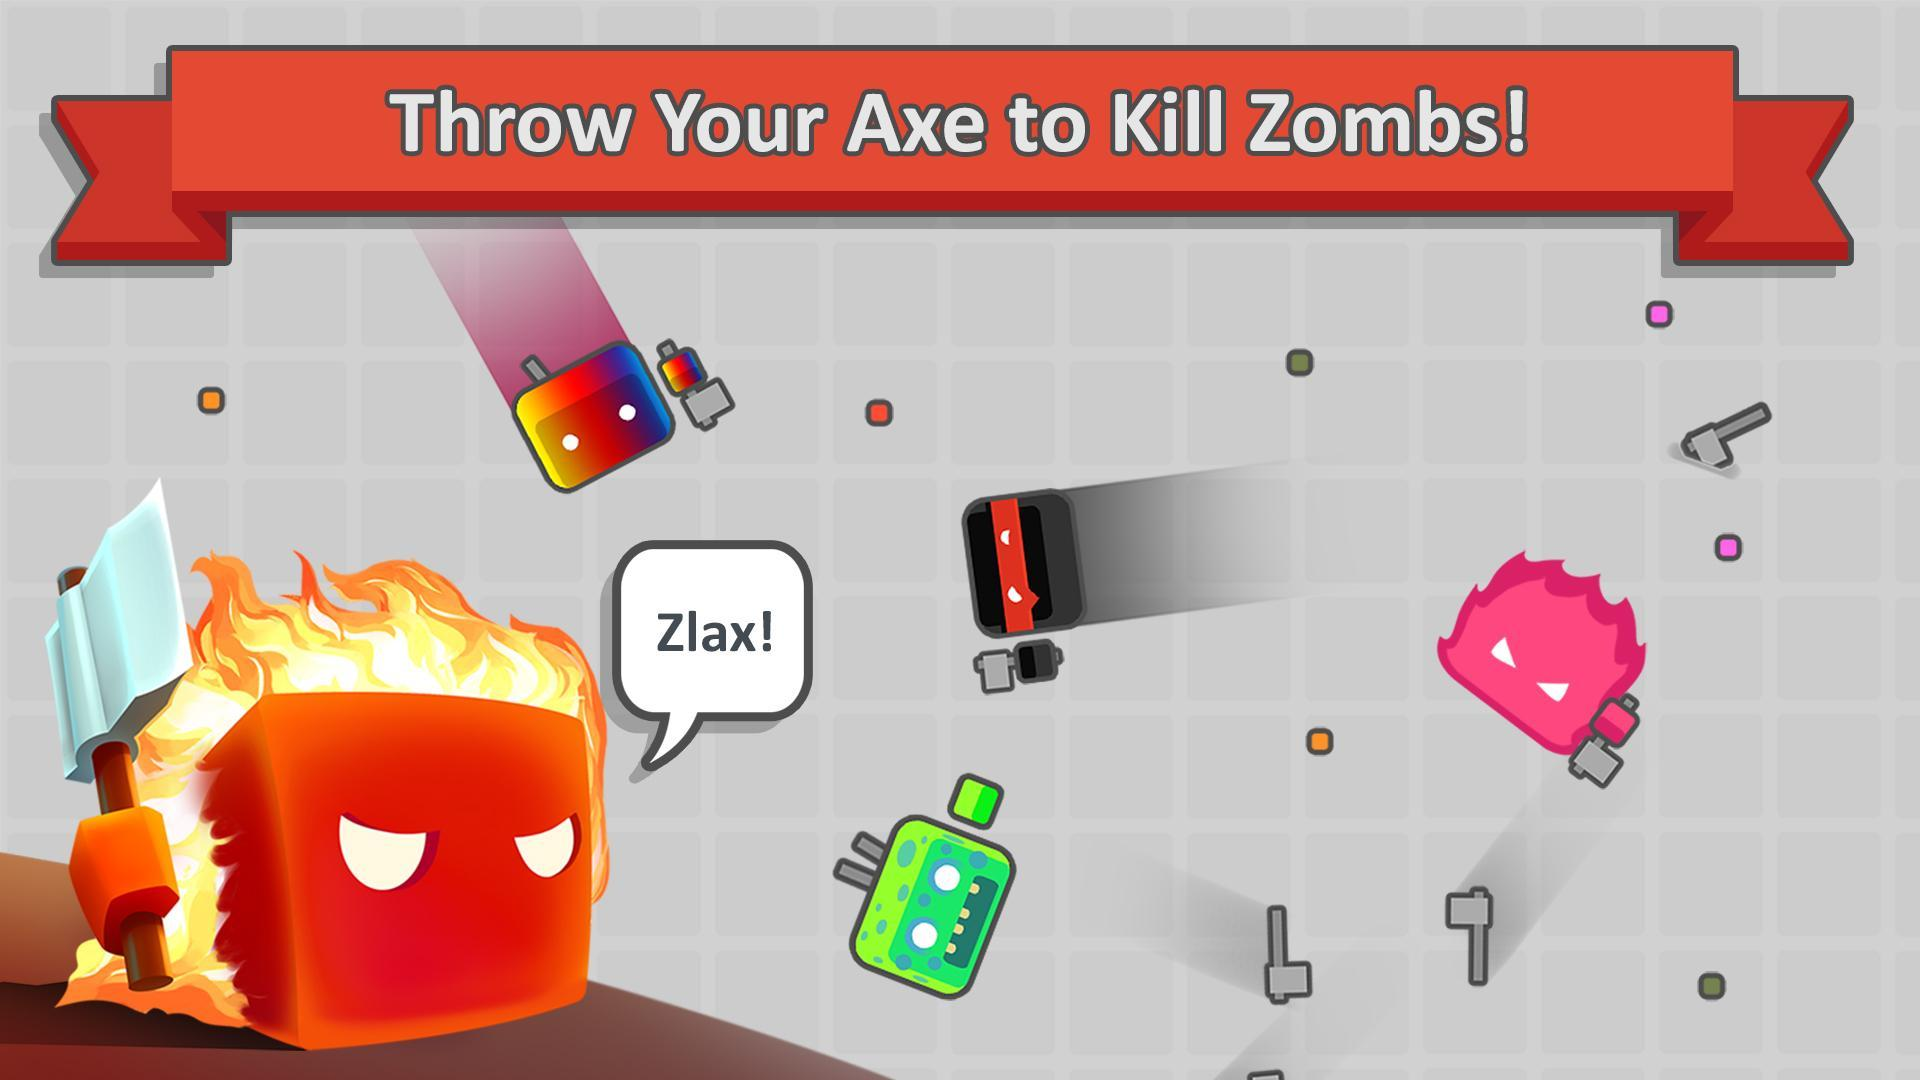 Zlax.io Zombs Luv Ax 1.9.1 Screenshot 1